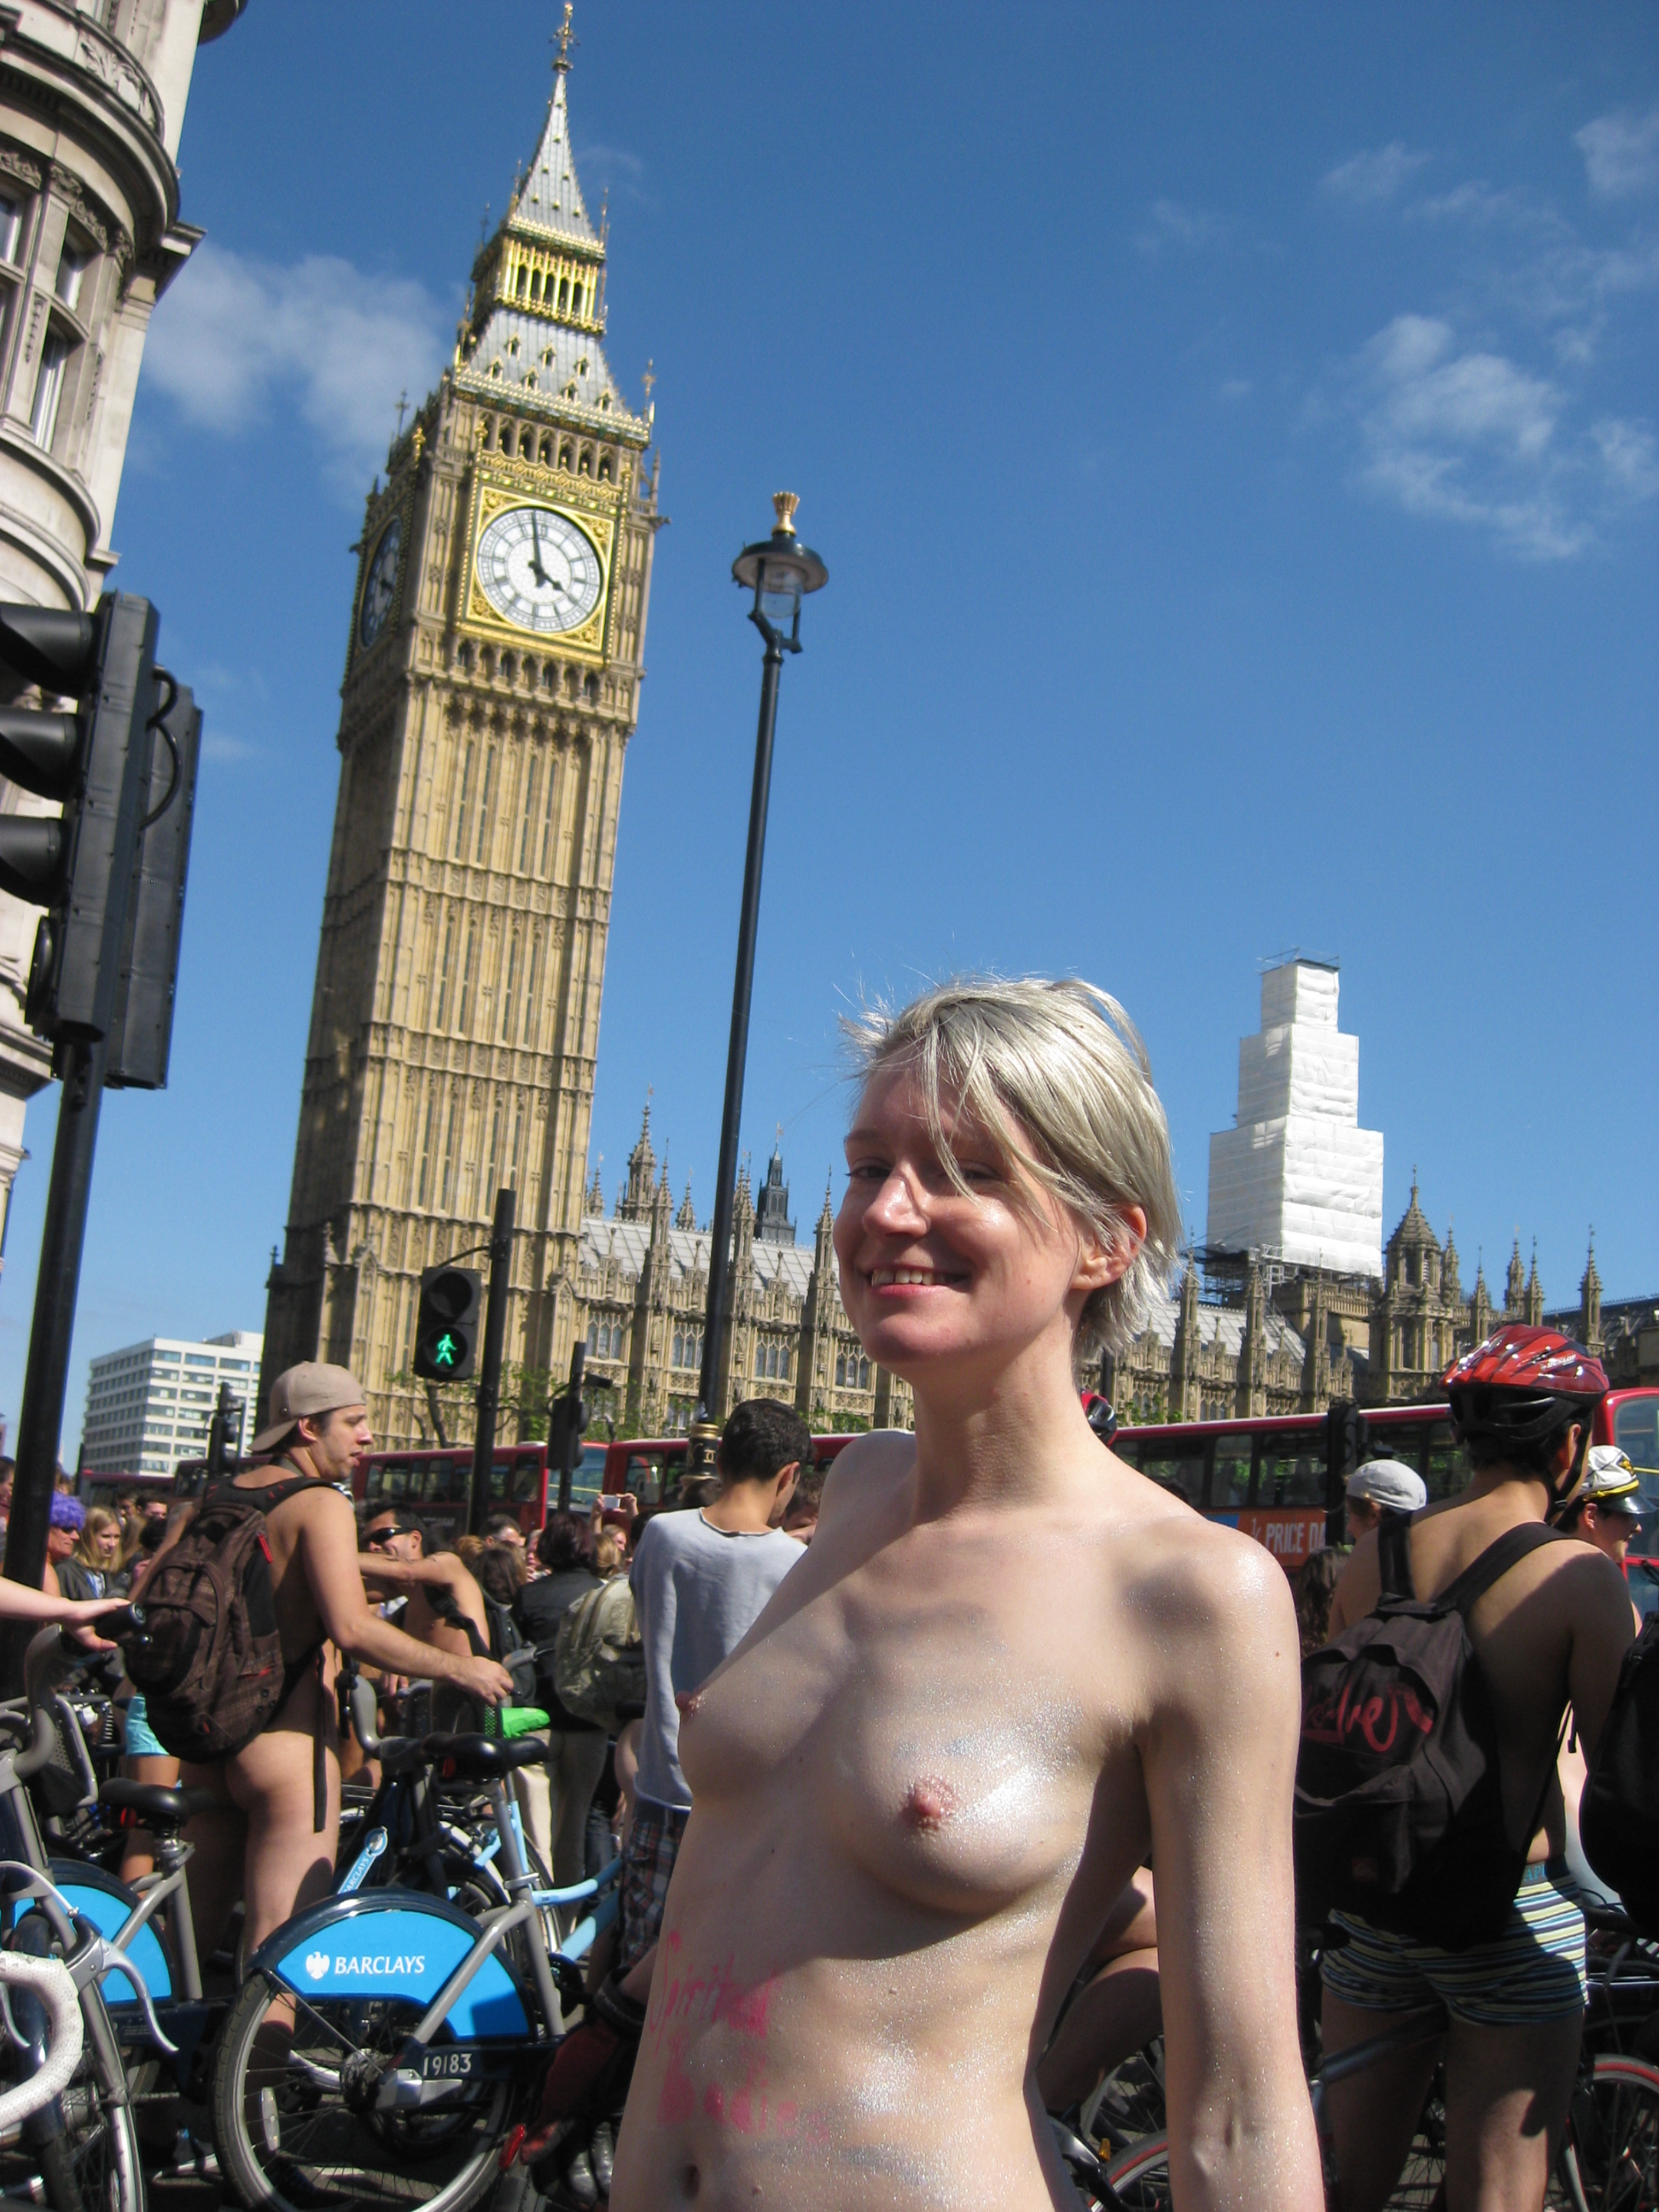 London girls naked images — pic 12